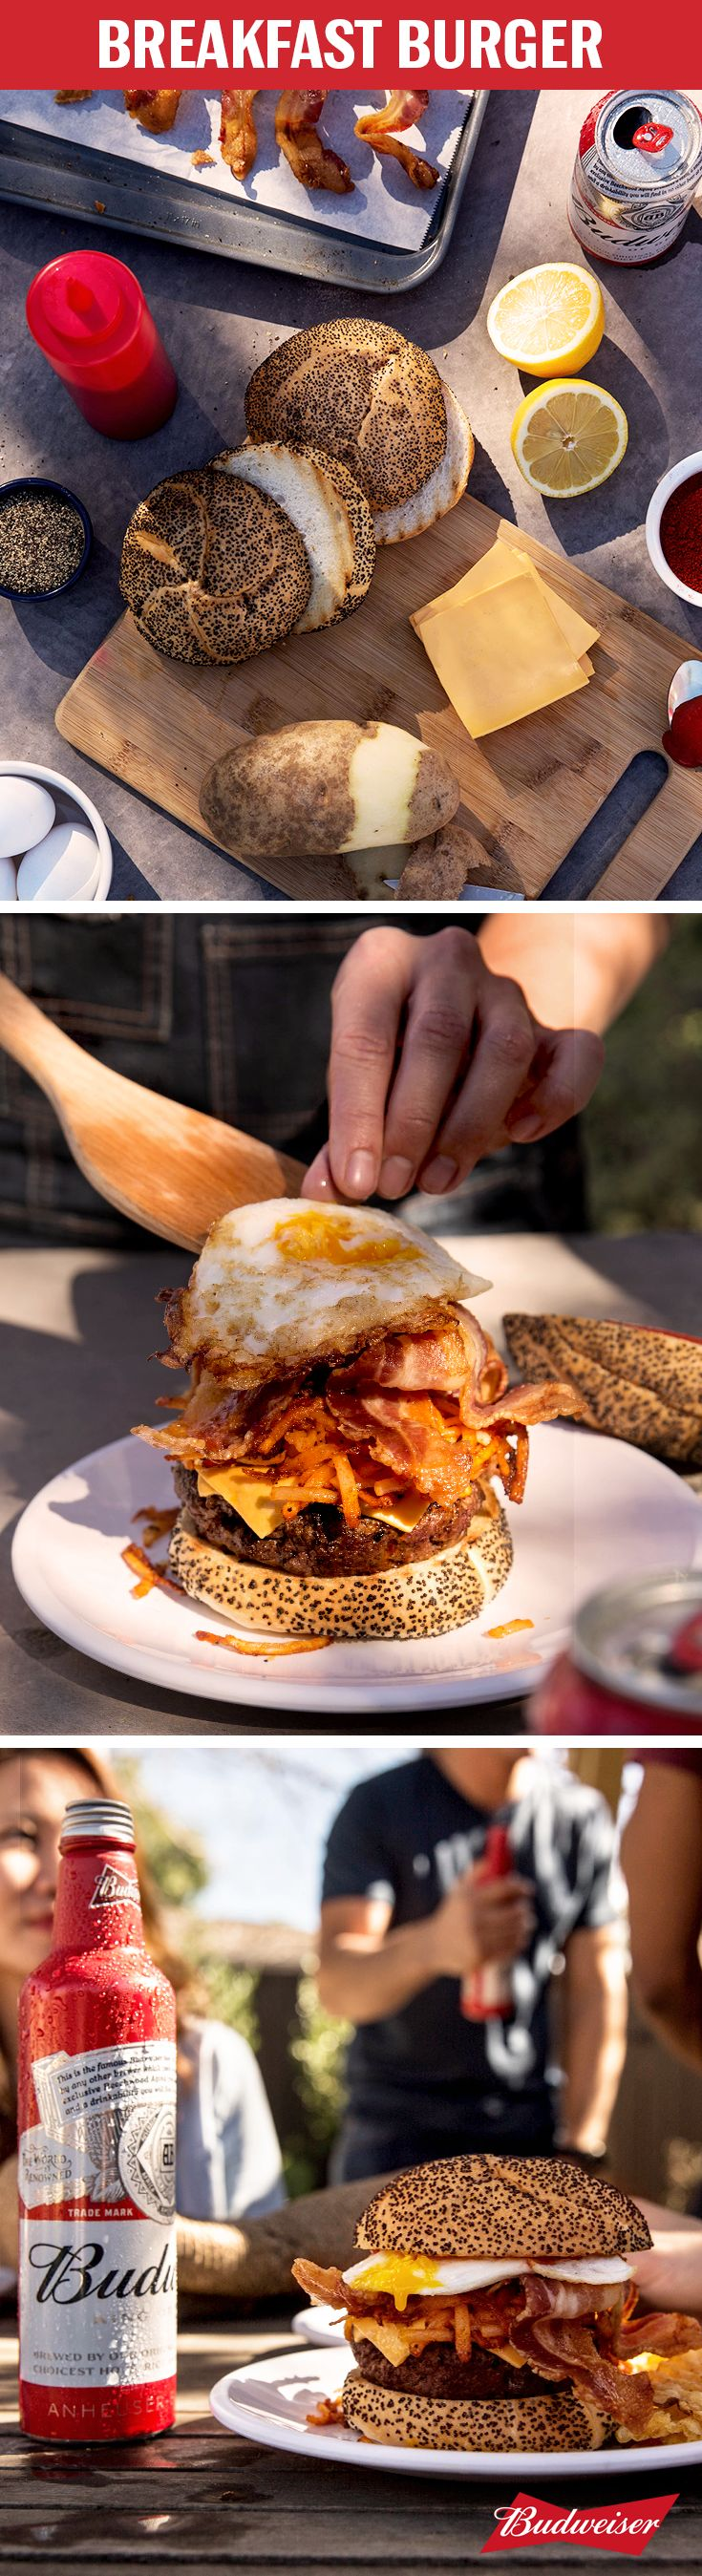 Don't let the name fool you, this Breakfast Burger is perfect for any time of day. Eggs, bacon, hashbrowns and Sriracha ketchup on a poppy seed bun are just that delicious. And if the sauce starts to get too spicy for you, just take a sip of Budweiser. It's a lager, which means it's perfect for extinguishing the heat. We'll stop talking and let you get straight to your grill now.